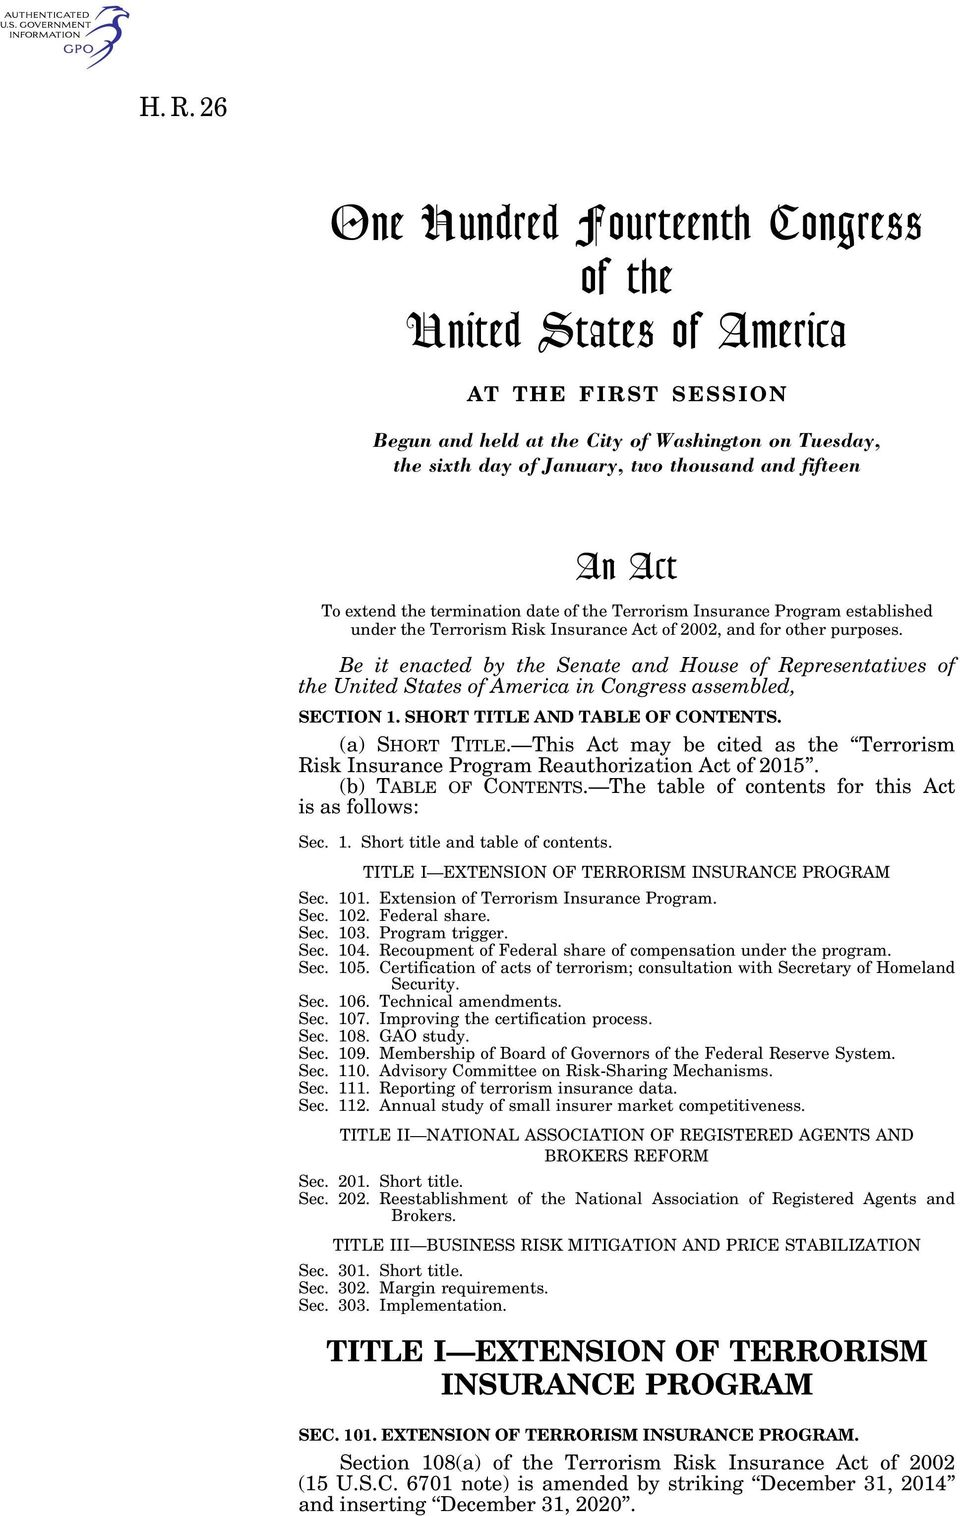 Be it enacted by the Senate and House of Representatives of the United States of America in Congress assembled, SECTION 1. SHORT TITLE AND TABLE OF CONTENTS. (a) SHORT TITLE.